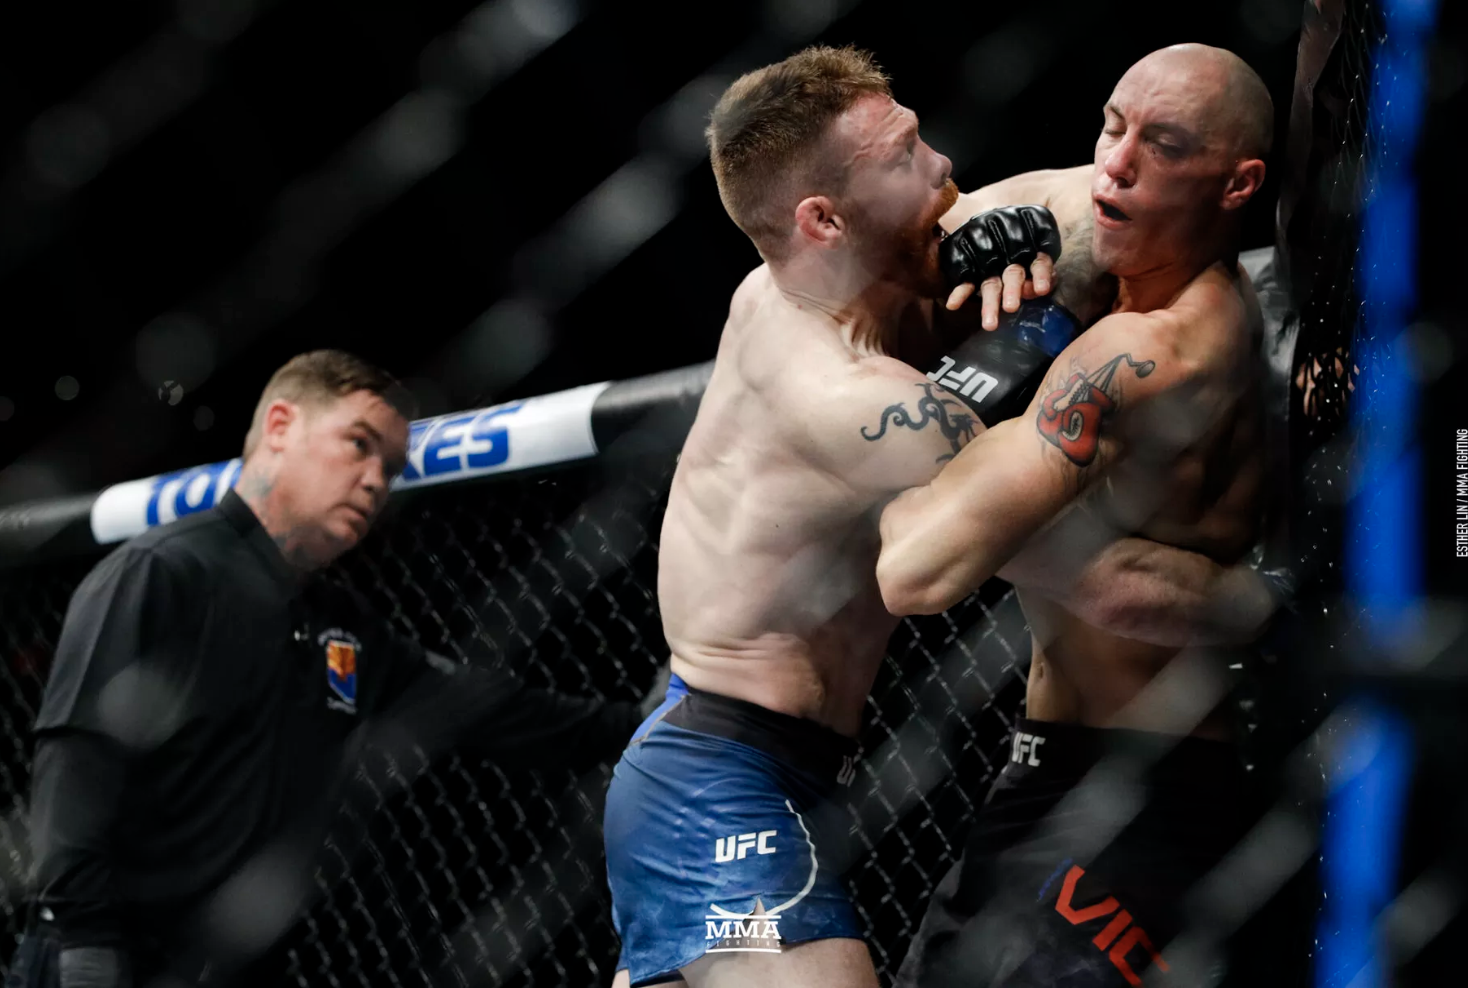 Paul Felder suffered collapsed lung late in UFC Phoenix win over James Vick -